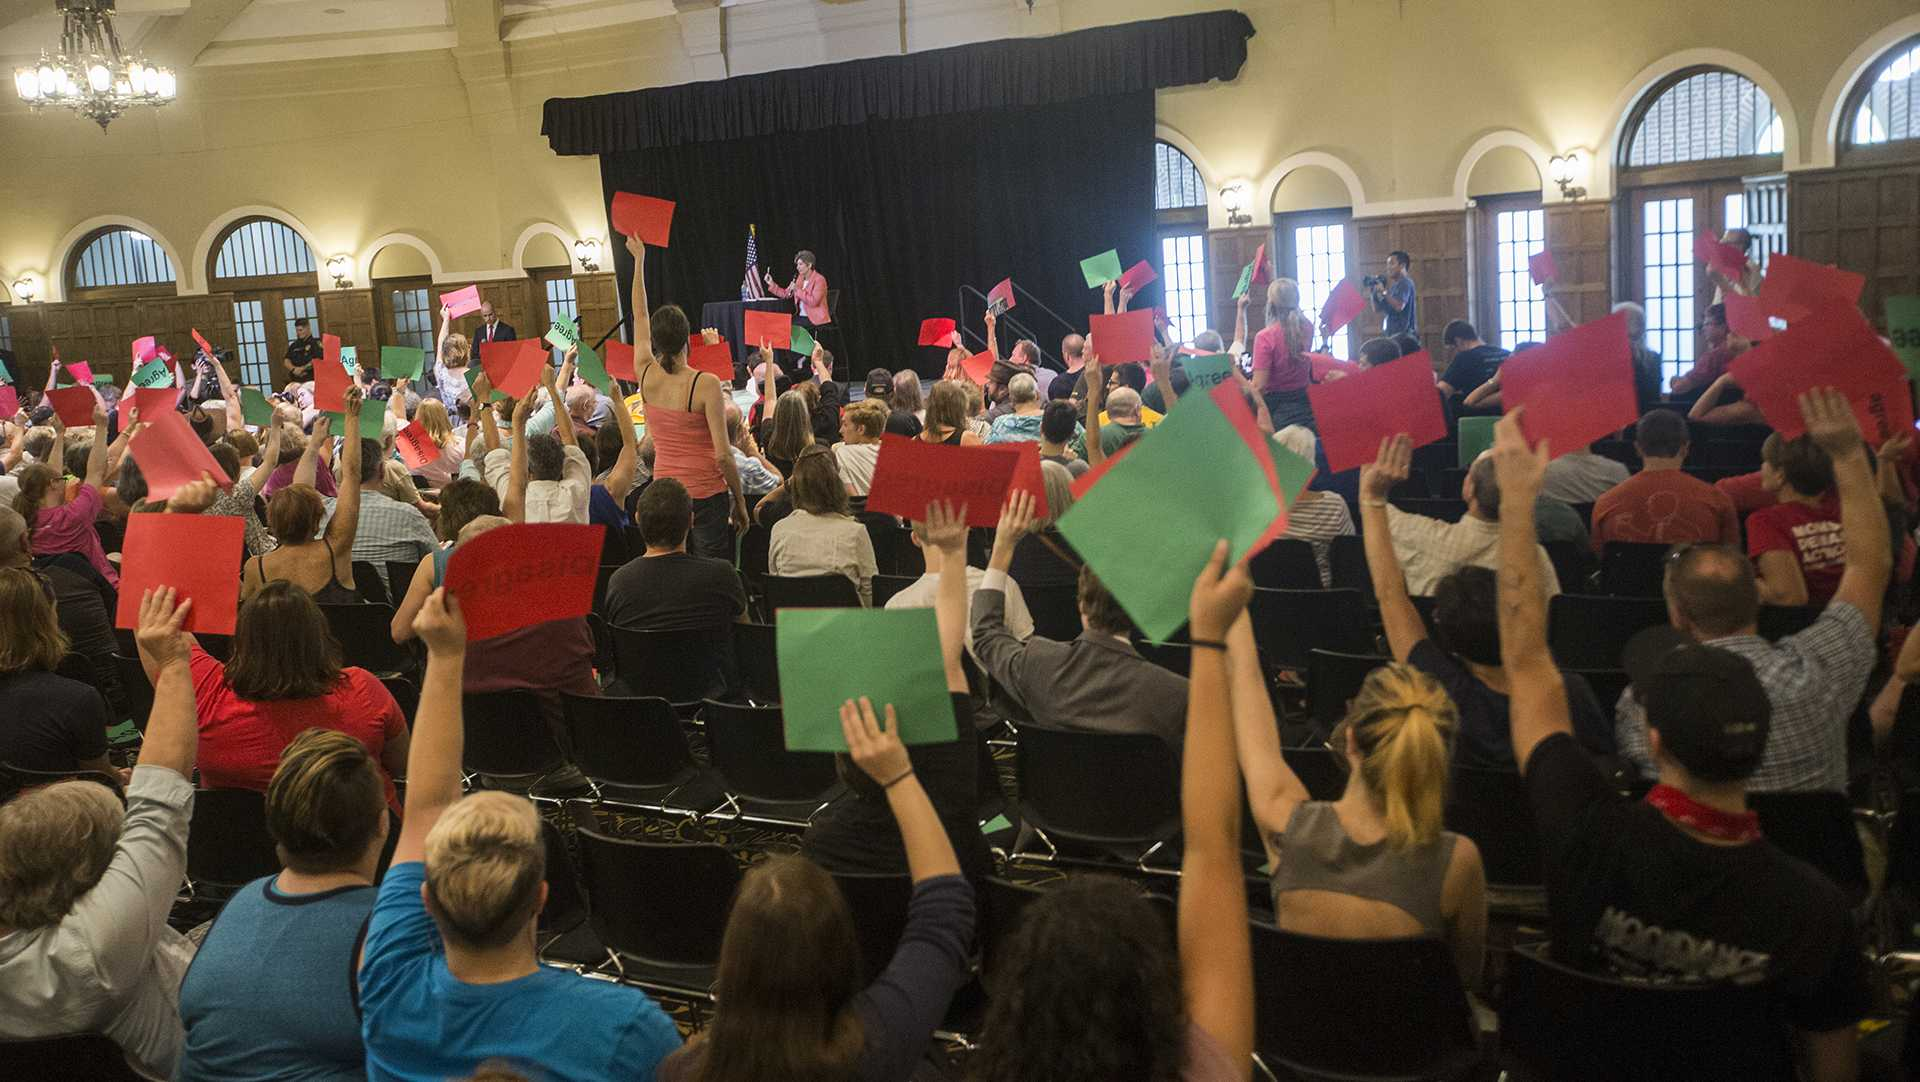 Crowd members hold signs in disapproval during a town hall meeting in the IMU on Friday, Sept. 22, 2017. While Sen. Ernst spoke in the IMU a protest was held outside in Hubbard park. (Joseph Cress/The Daily Iowan)